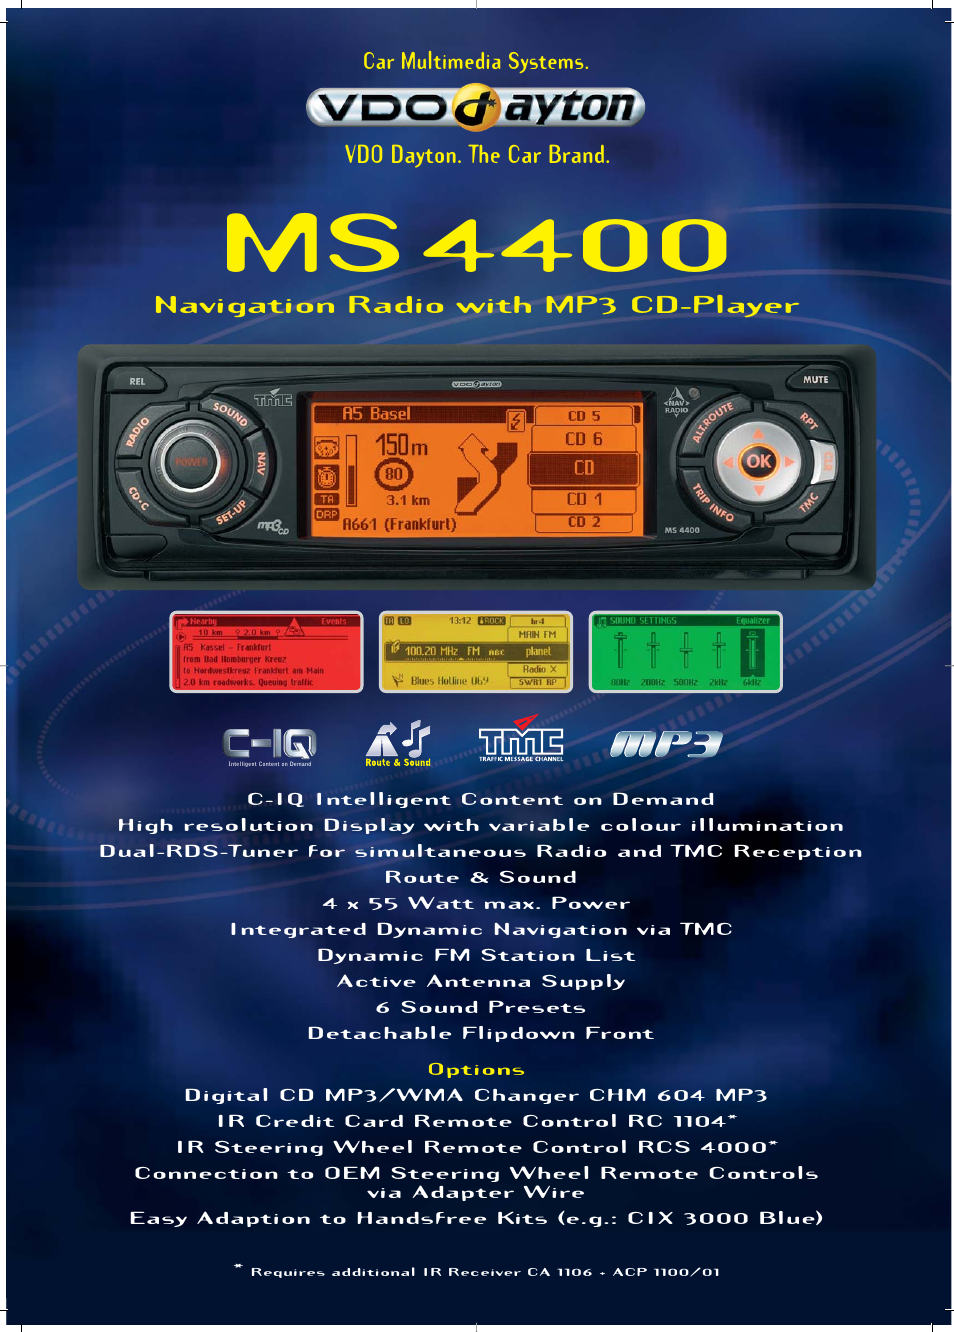 VDO Dayton Car Multimedia Systems MS4400 User Manual 2 pages